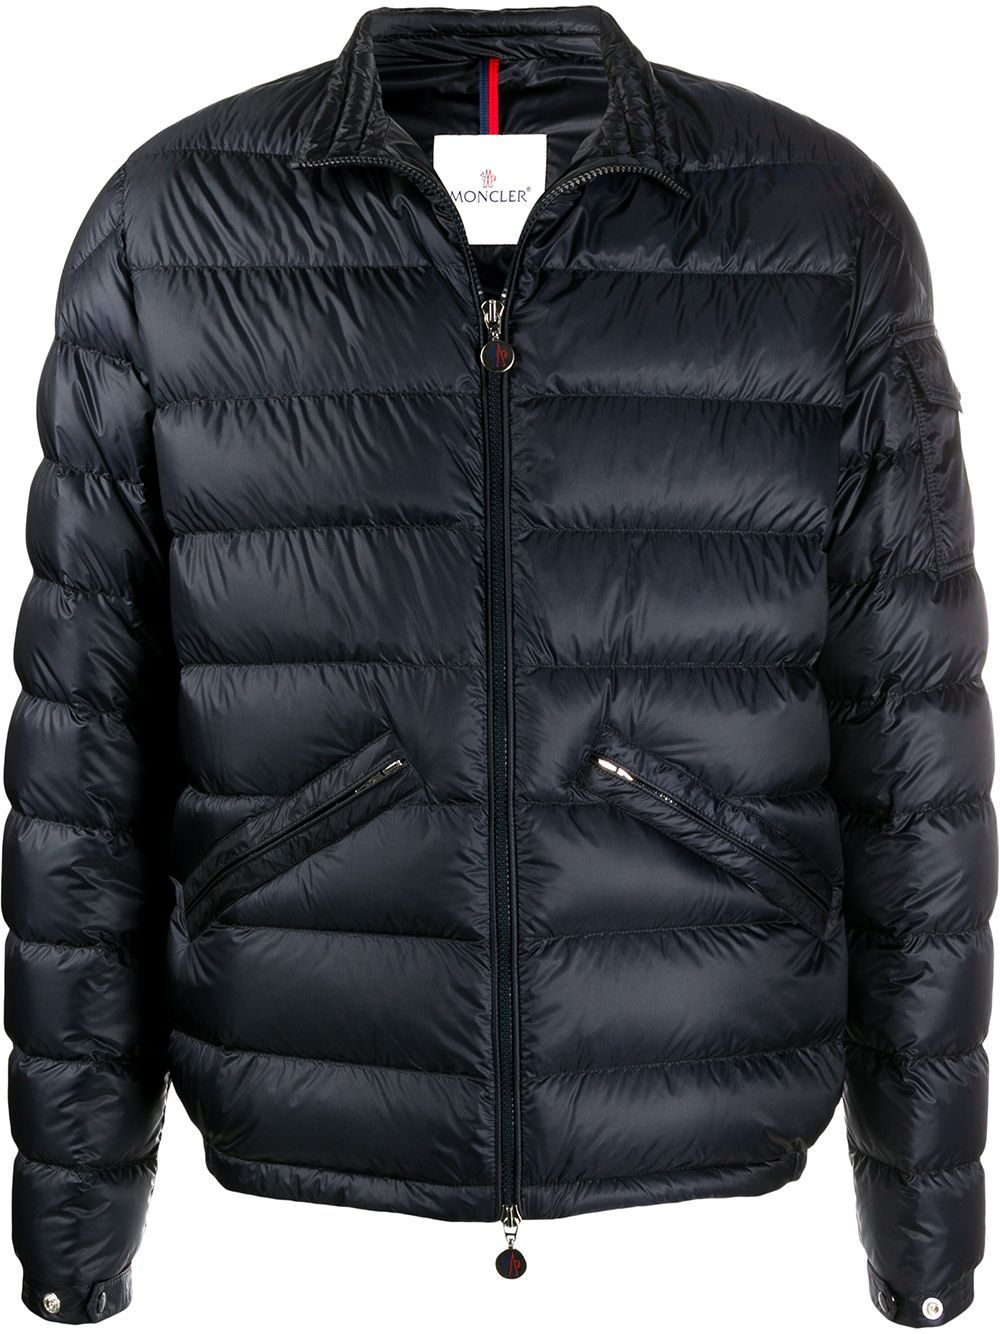 MONCLER Agay Giubbotto Padded Jacket Navy